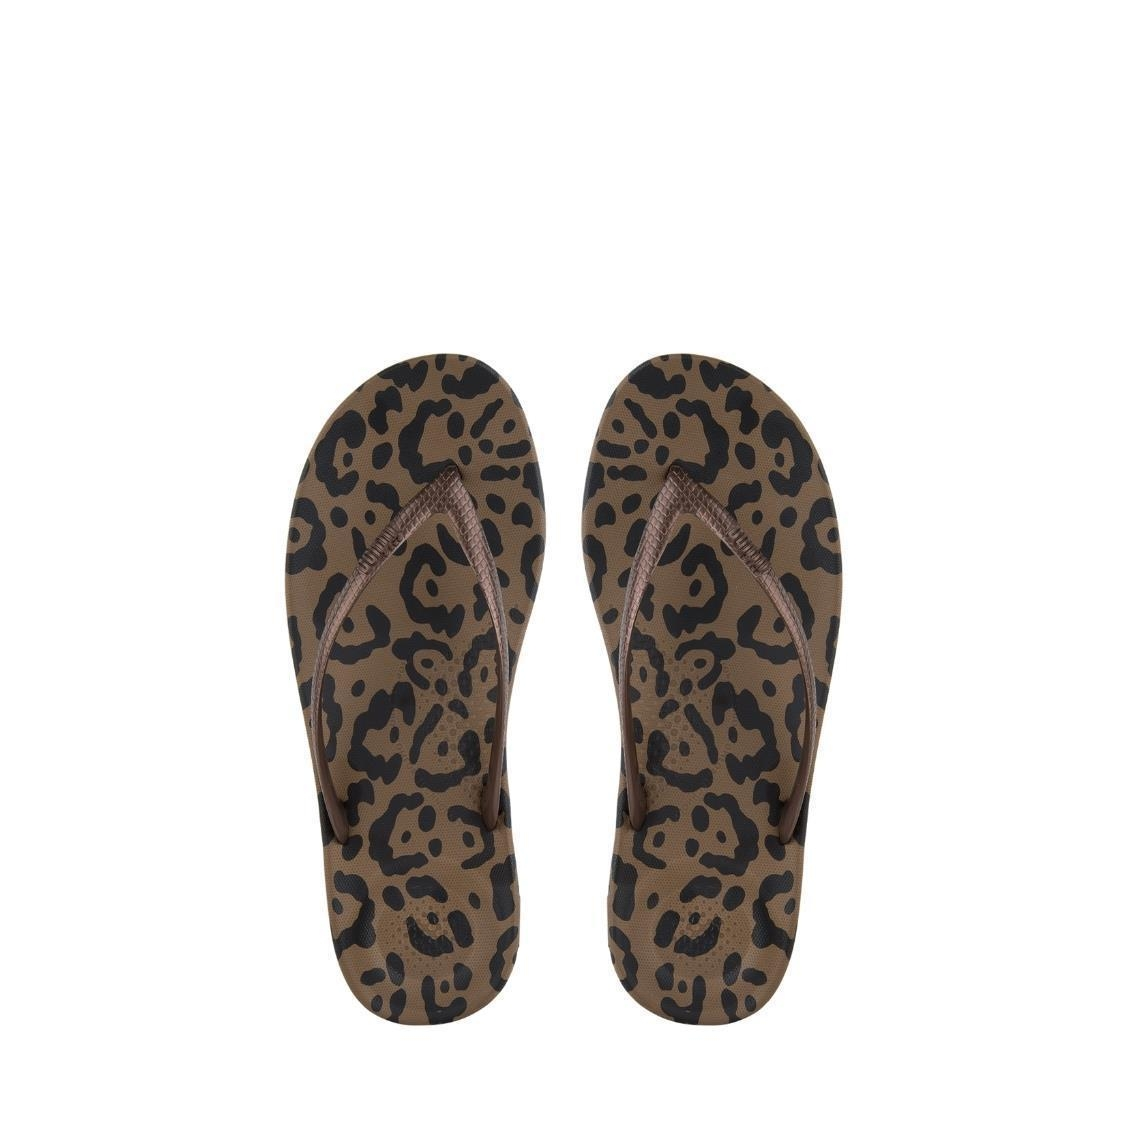 8a2f9bc4b137a3 iQushion™ Leopard-Print Flip Flops Bronze Metro Department Store